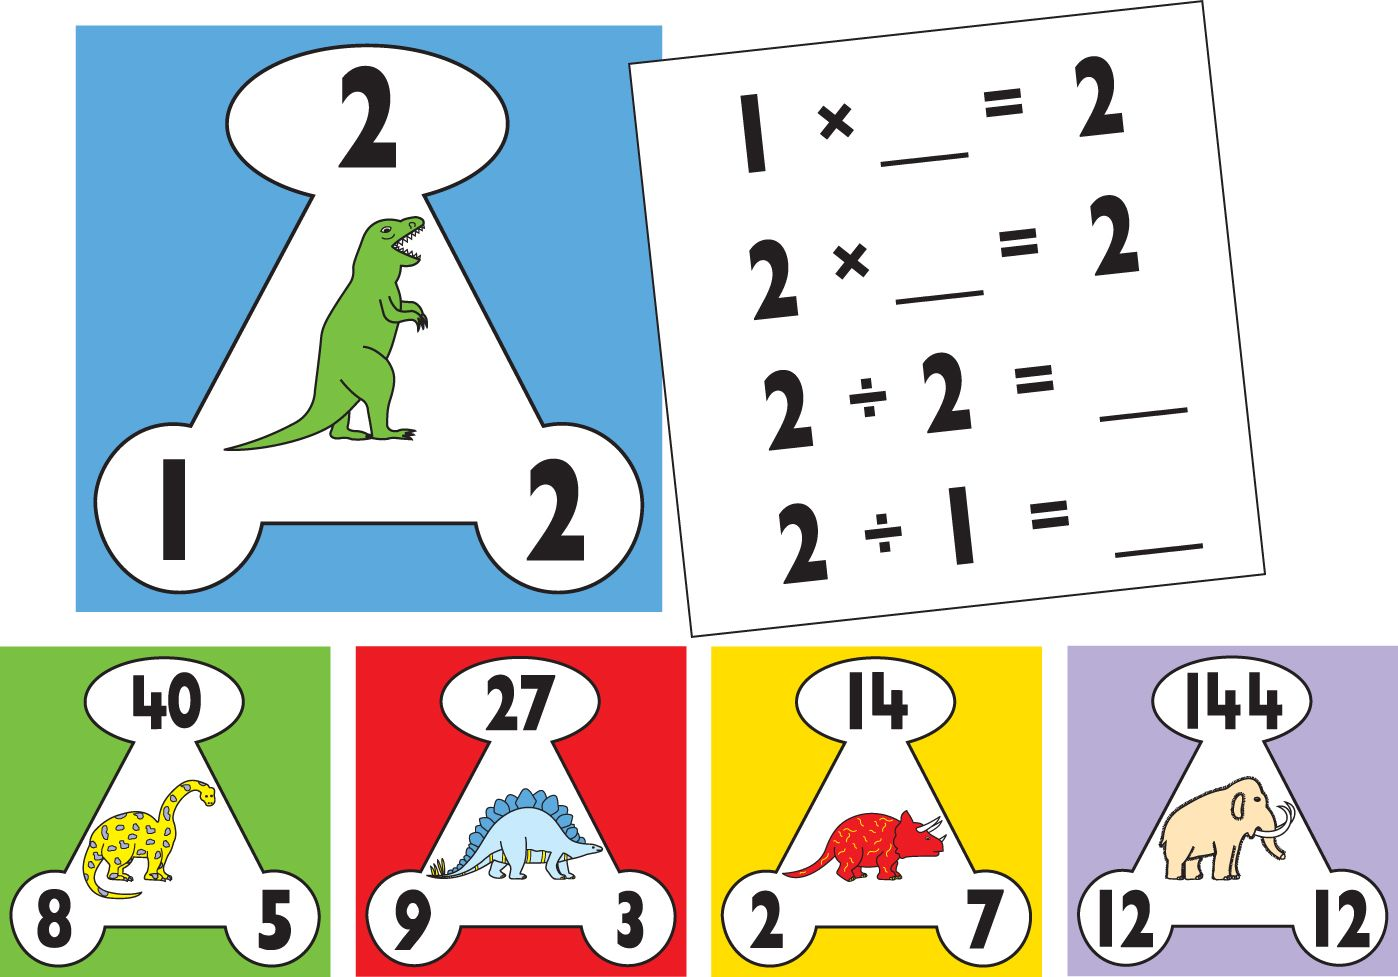 An Easy Way To Learn The Times Tables Revision Exercises